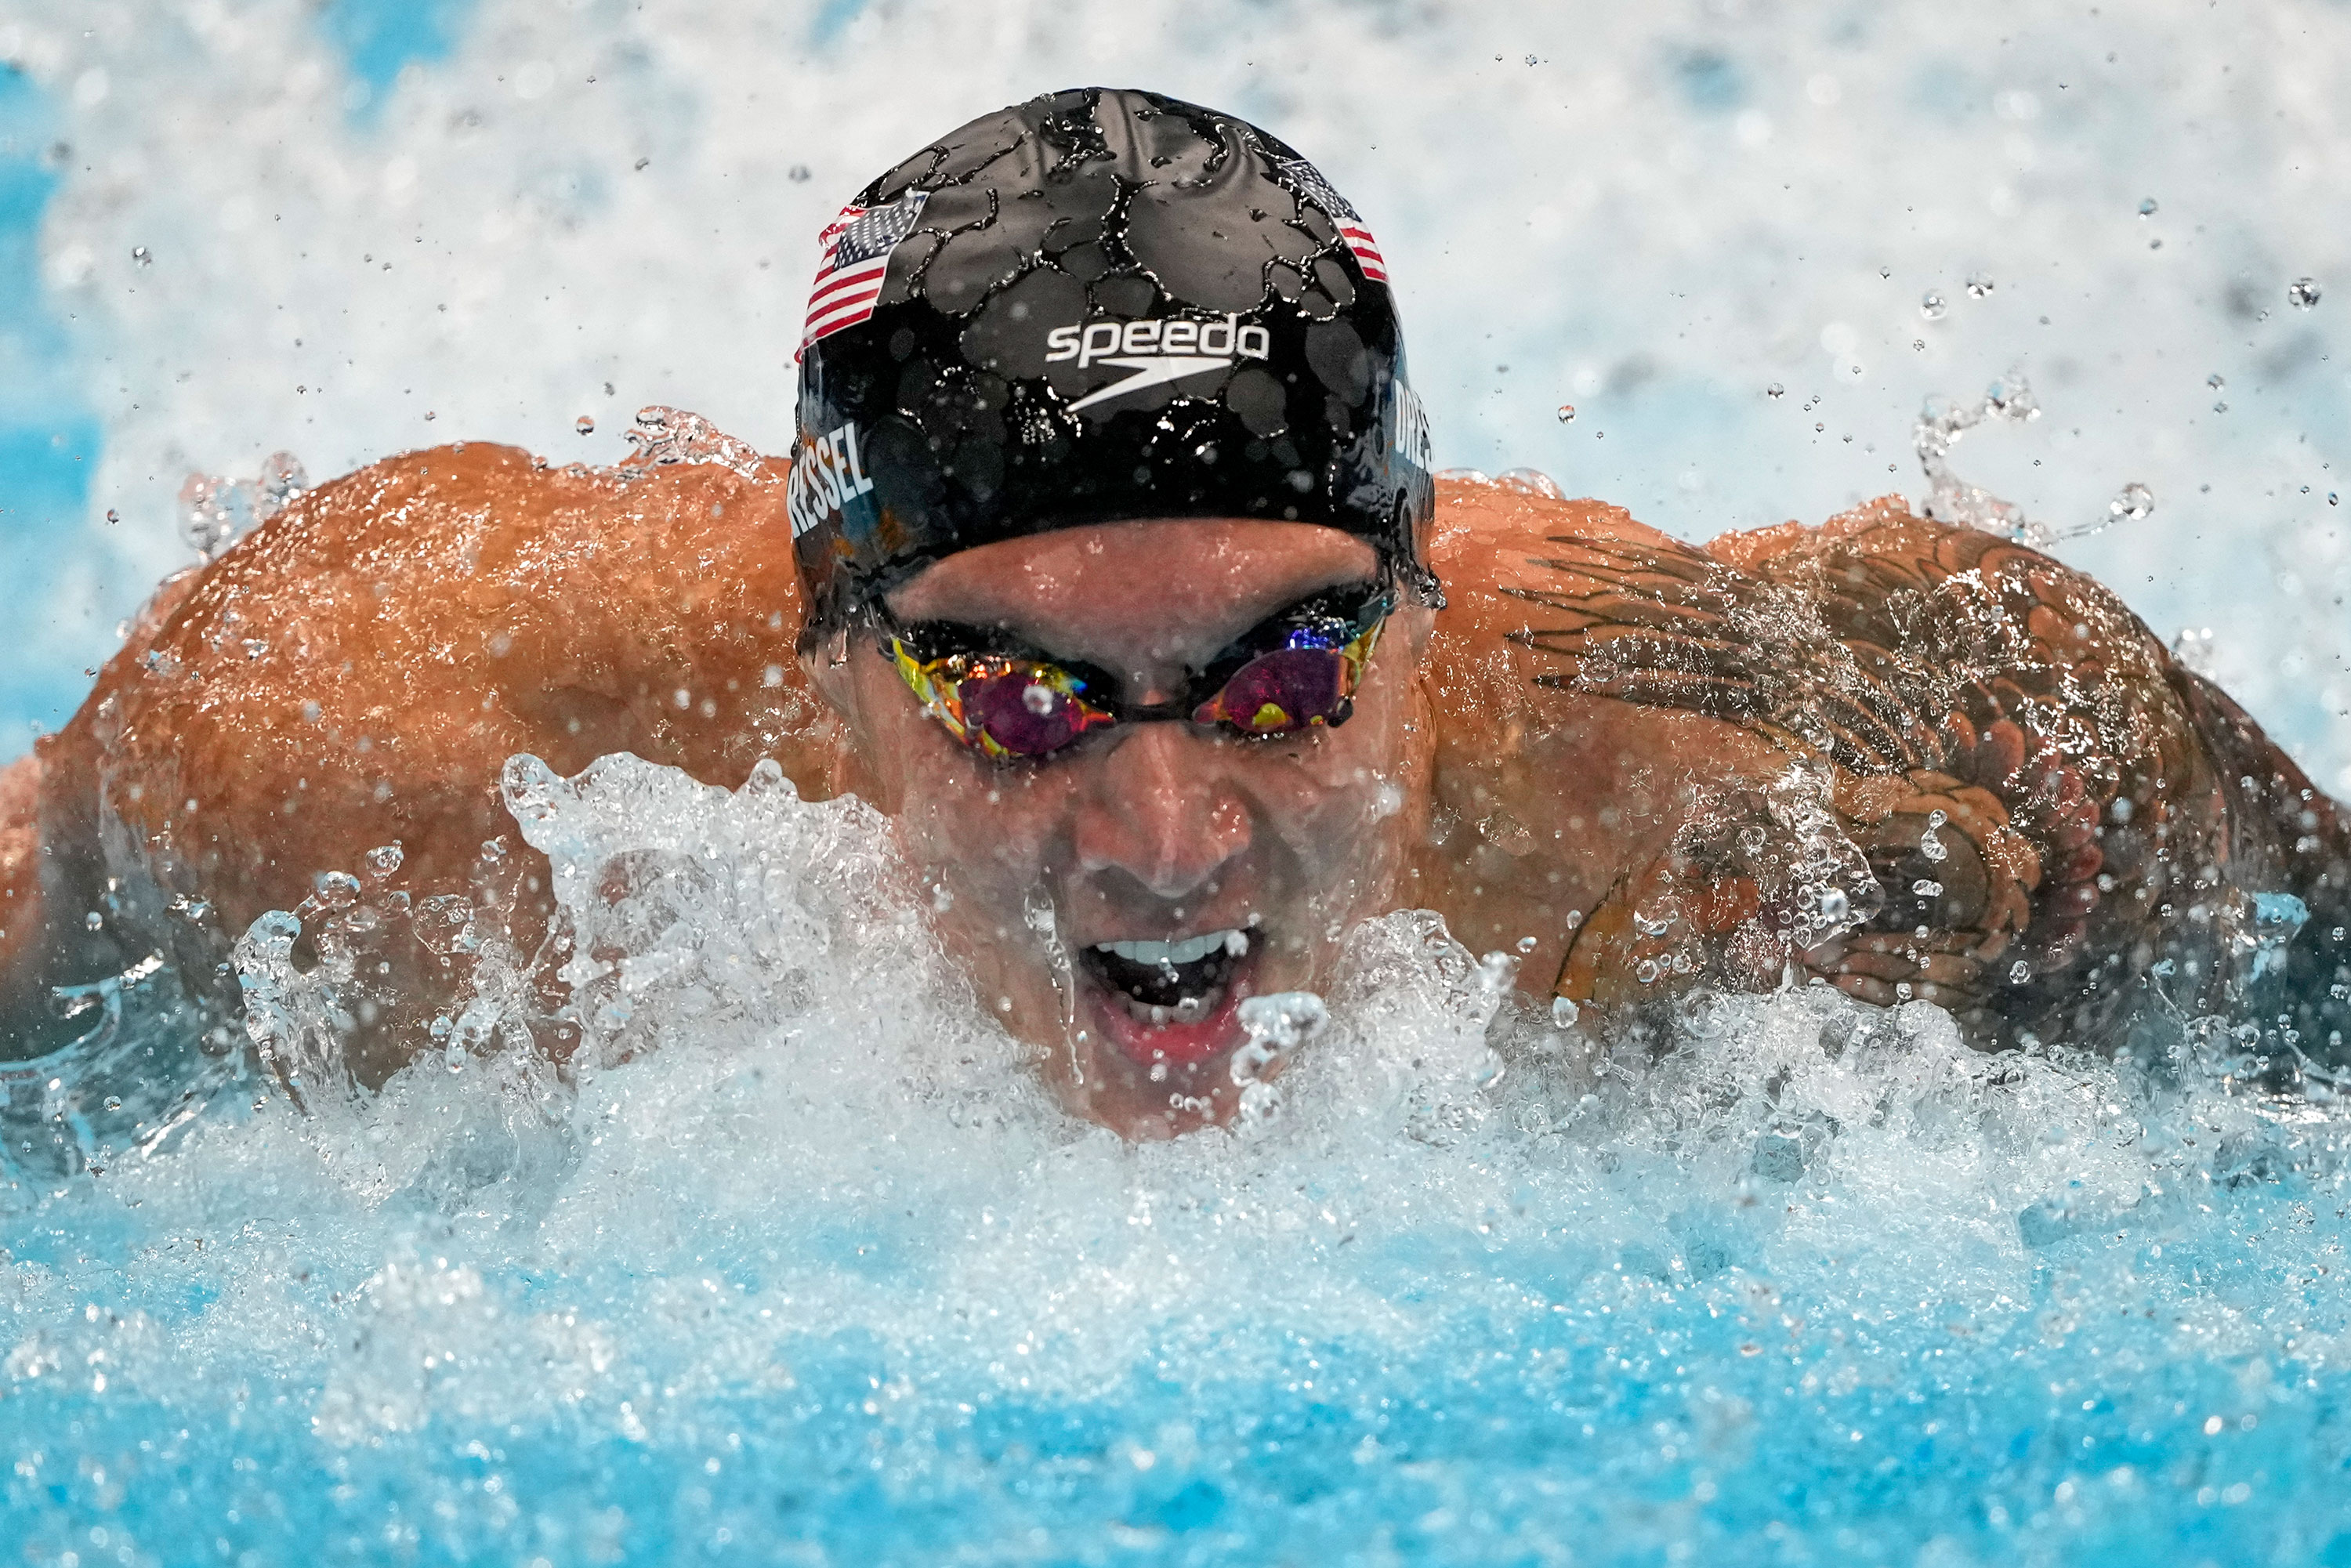 American Caeleb Dressel swims in the 100-meter butterfly final on July 31. Dressel took home gold in the event.